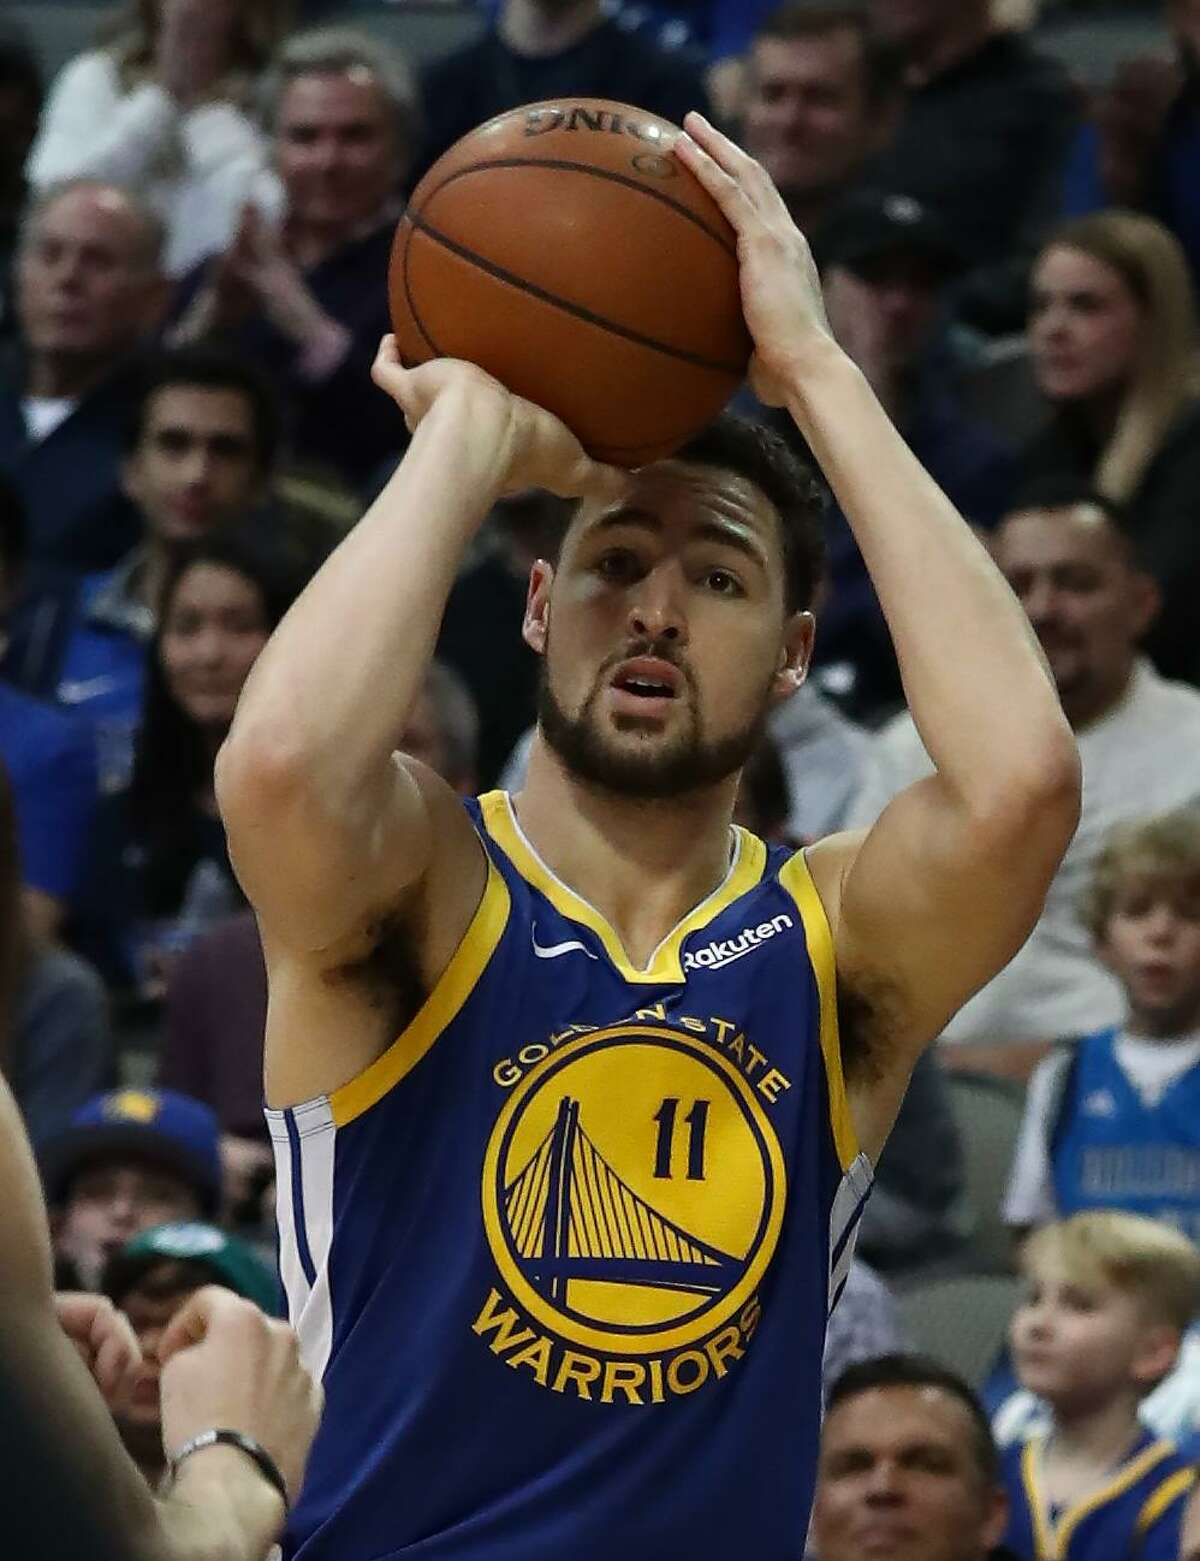 DALLAS, TEXAS - JANUARY 13: Klay Thompson #11 of the Golden State Warriors takes a shot against the Dallas Mavericks at American Airlines Center on January 13, 2019 in Dallas, Texas. NOTE TO USER: User expressly acknowledges and agrees that, by downloading and or using this photograph, User is consenting to the terms and conditions of the Getty Images License Agreement. (Photo by Ronald Martinez/Getty Images)